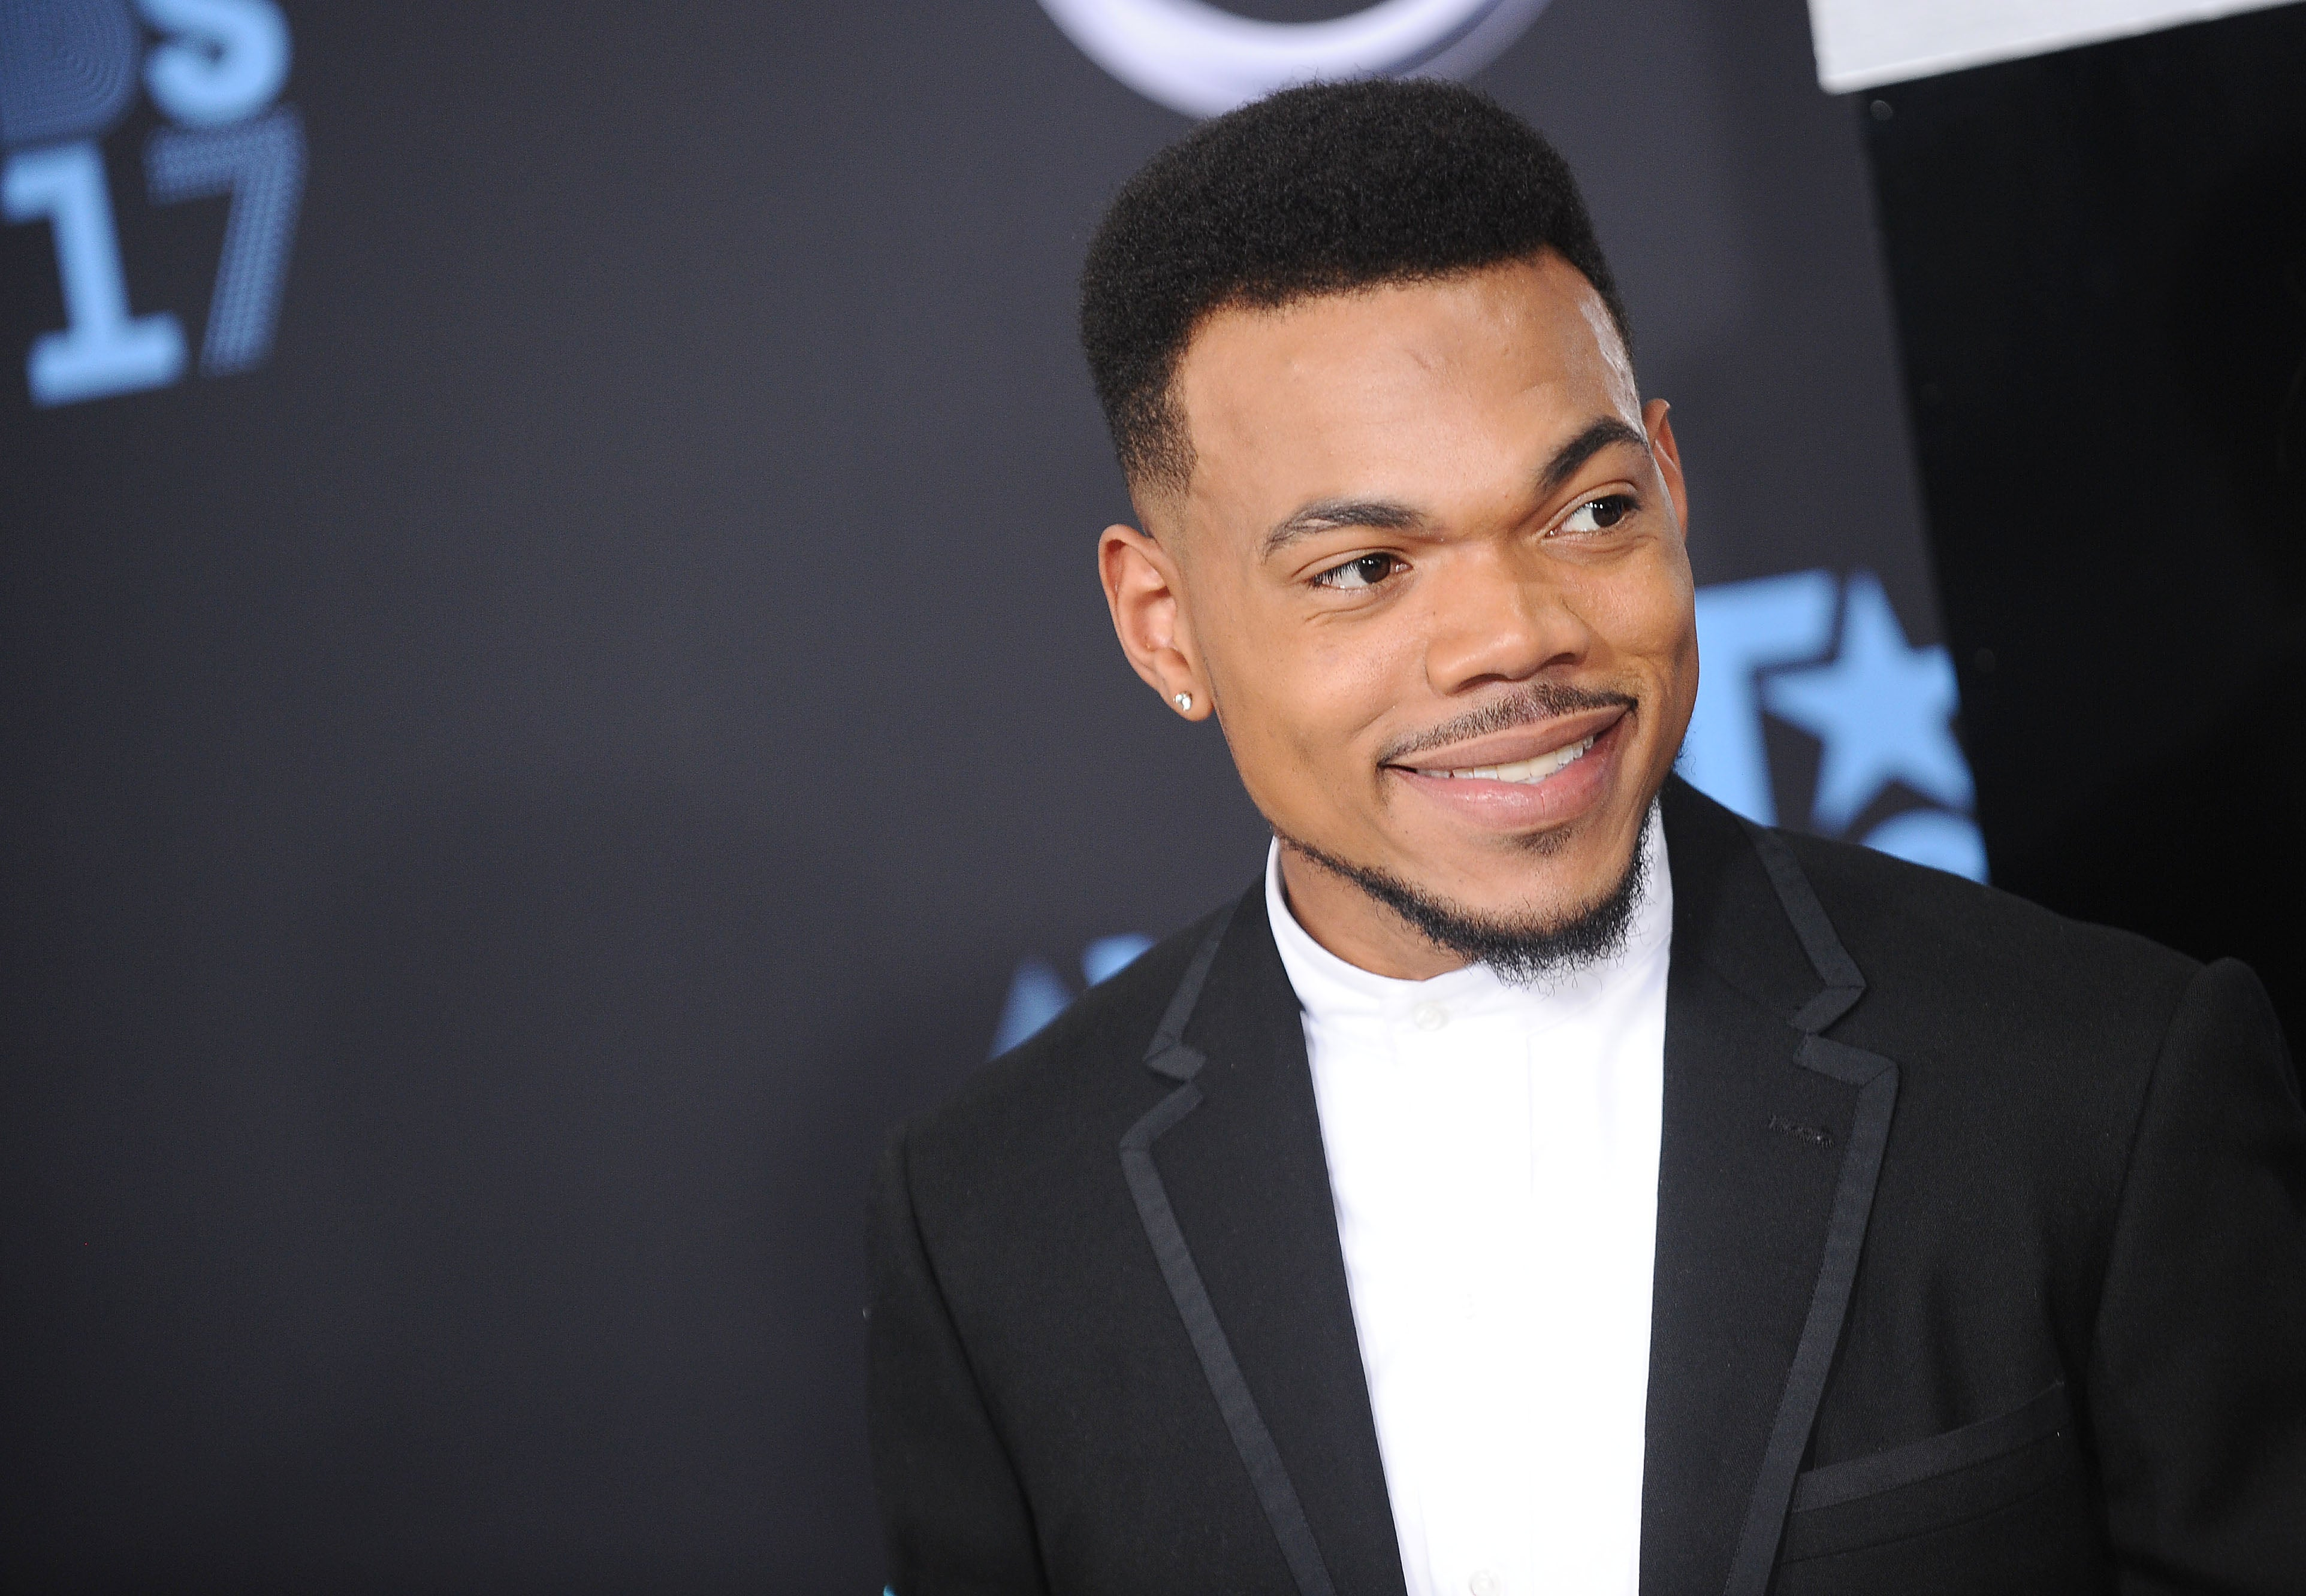 Chicago's Biggest Parade Welcomes Chance The Rapper As Grand Marshal